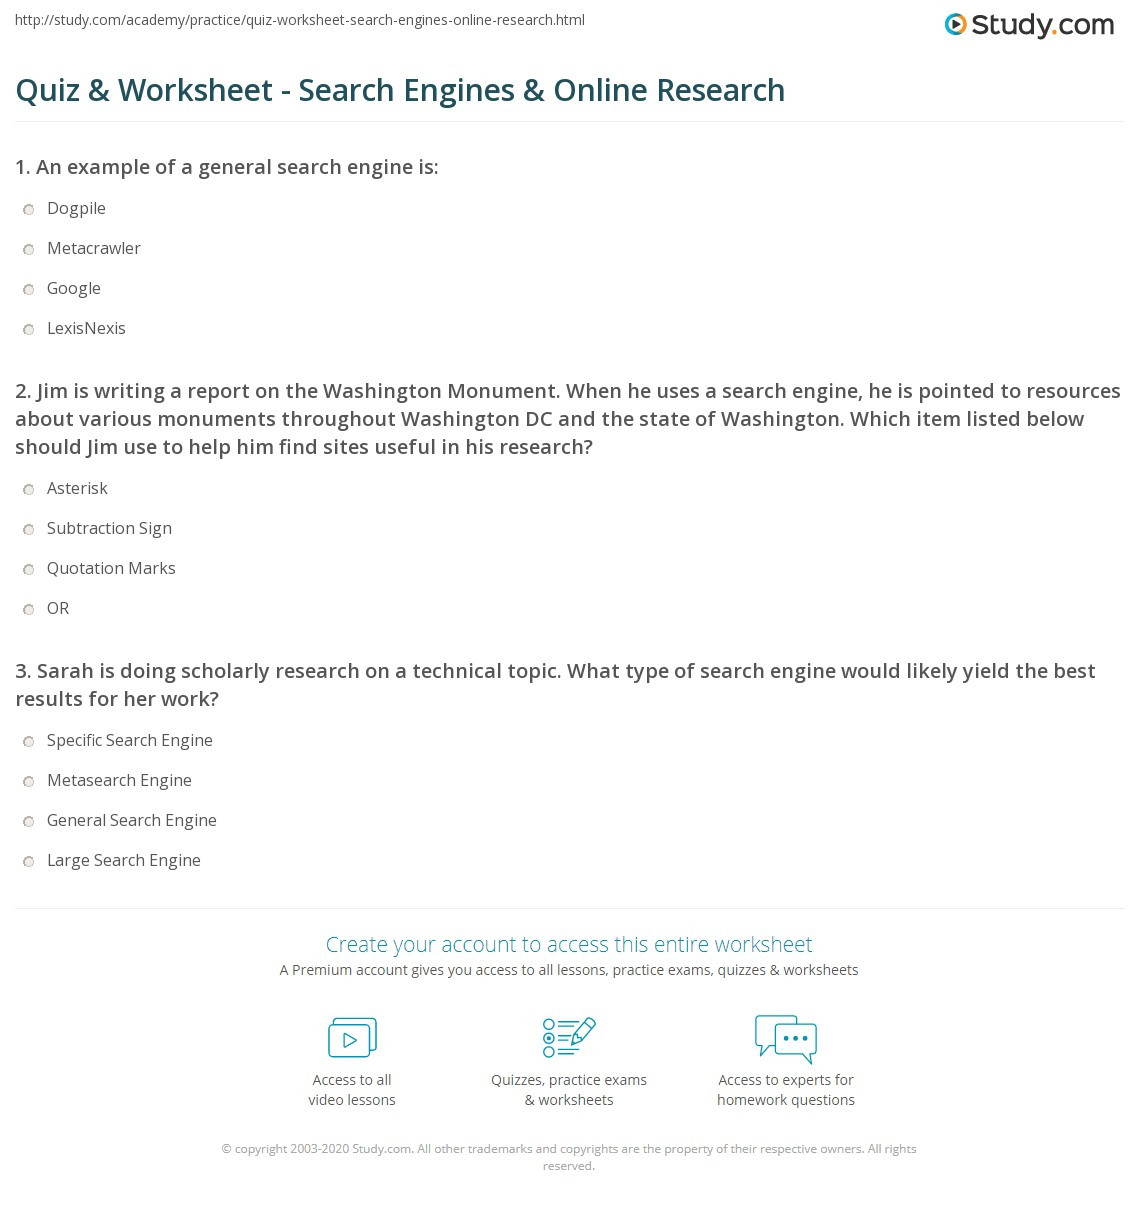 Reliable sources Worksheet Middle School Quiz & Worksheet Search Engines & Line Research